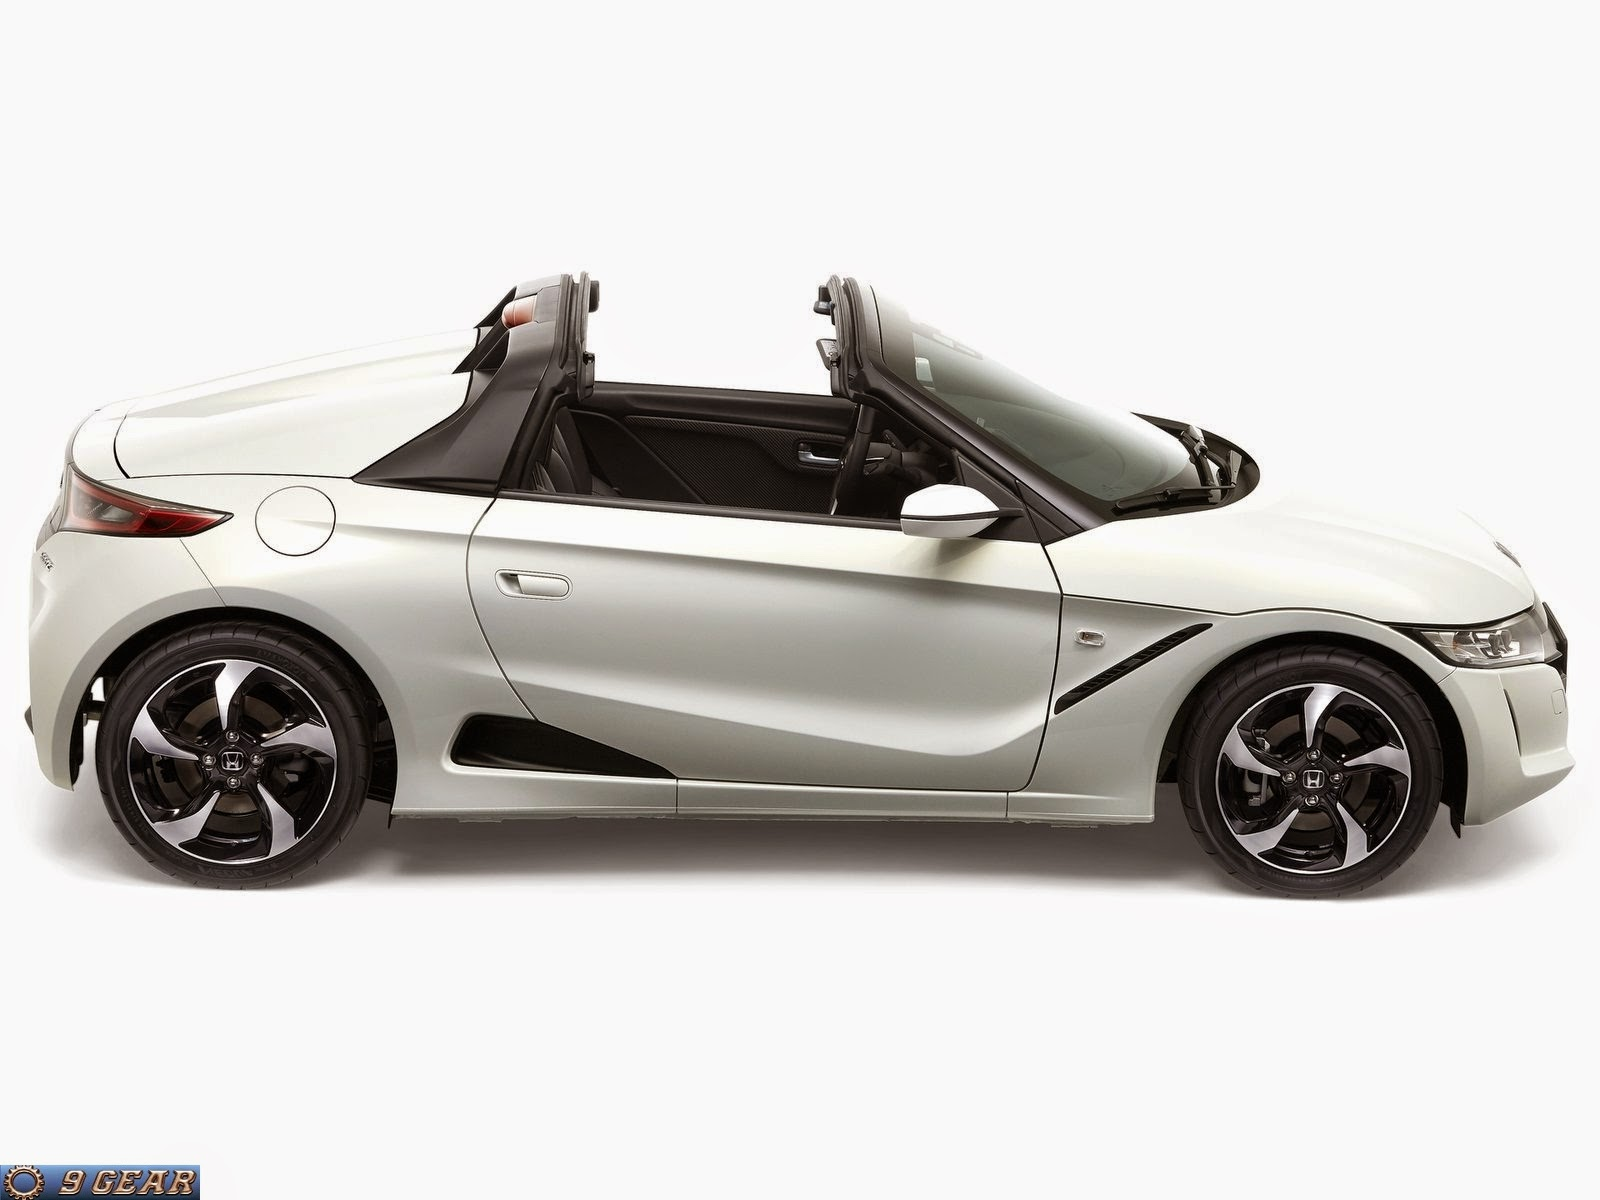 Honda S660 2 Seater Open Top Sports Car